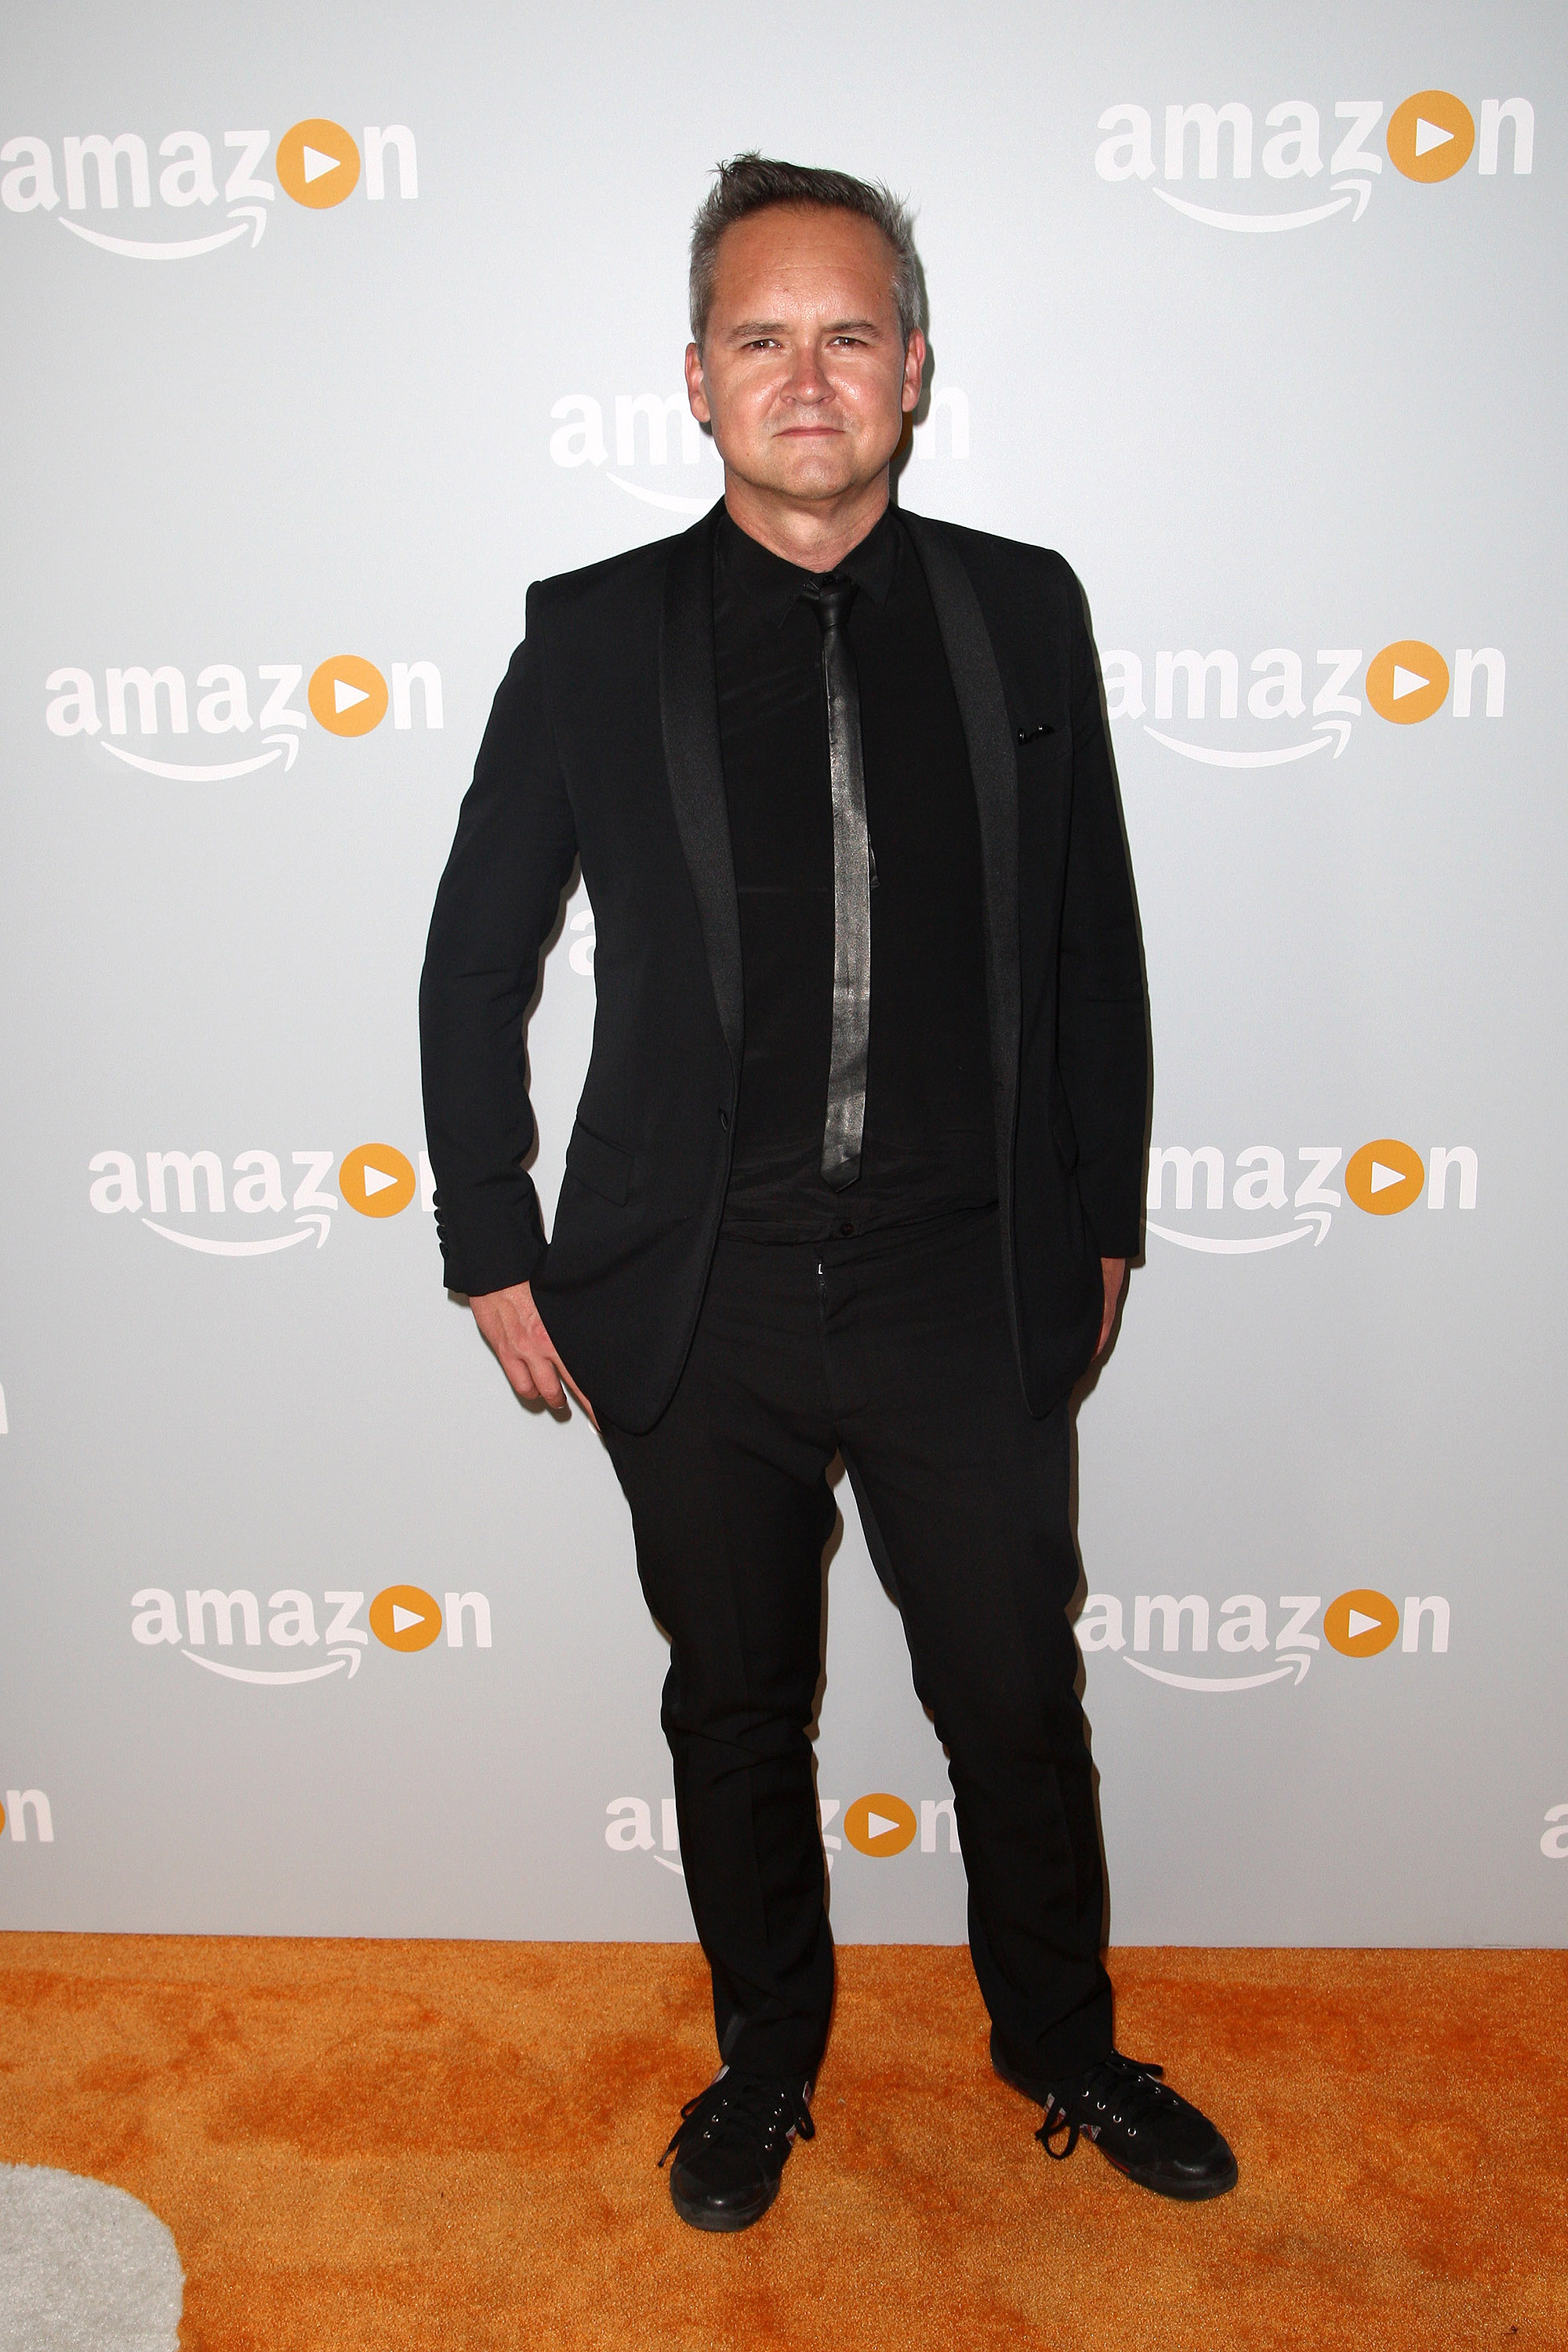 Head of Amazon.com's media development division Roy Price attends the Amazon Emmy Award afterparty at Sunset Tower, in West Hollywood, California, on September 18, 2016. (Photo: TOMMASO BODDI/AFP/Getty Images)